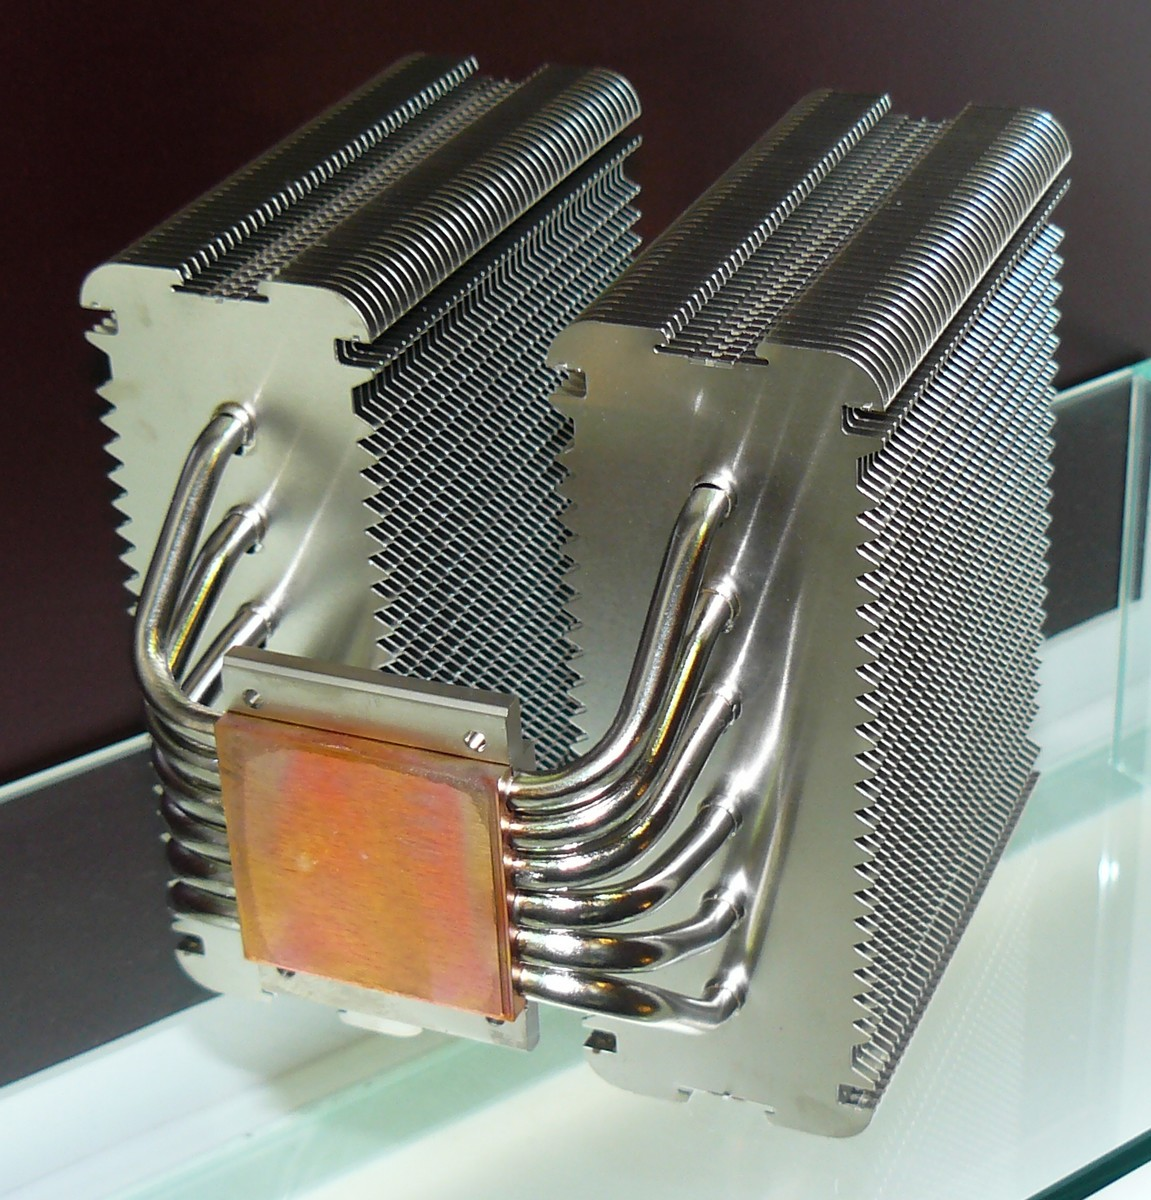 Noctua Diamon-Copper Cooler